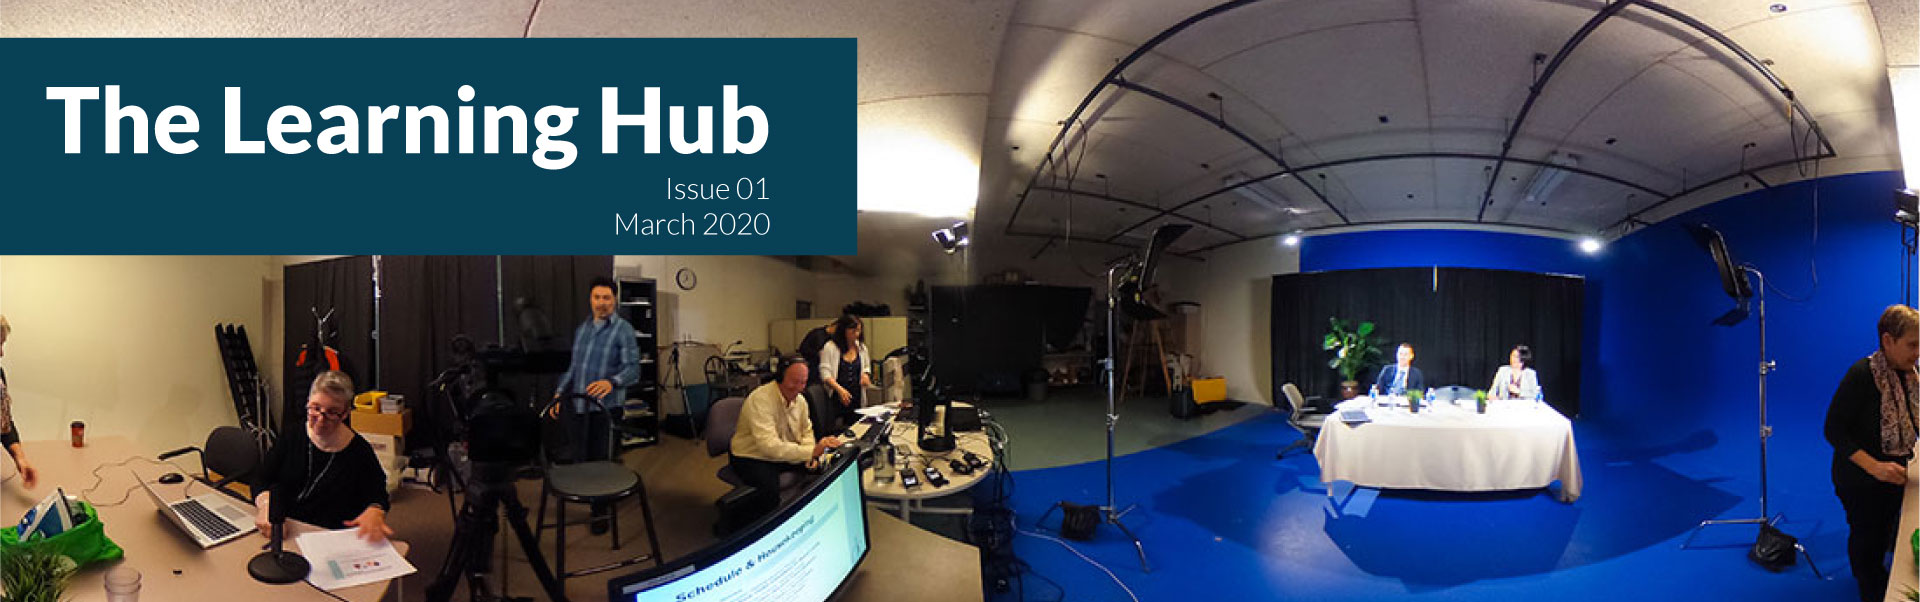 The Learning Hub: Issue 01